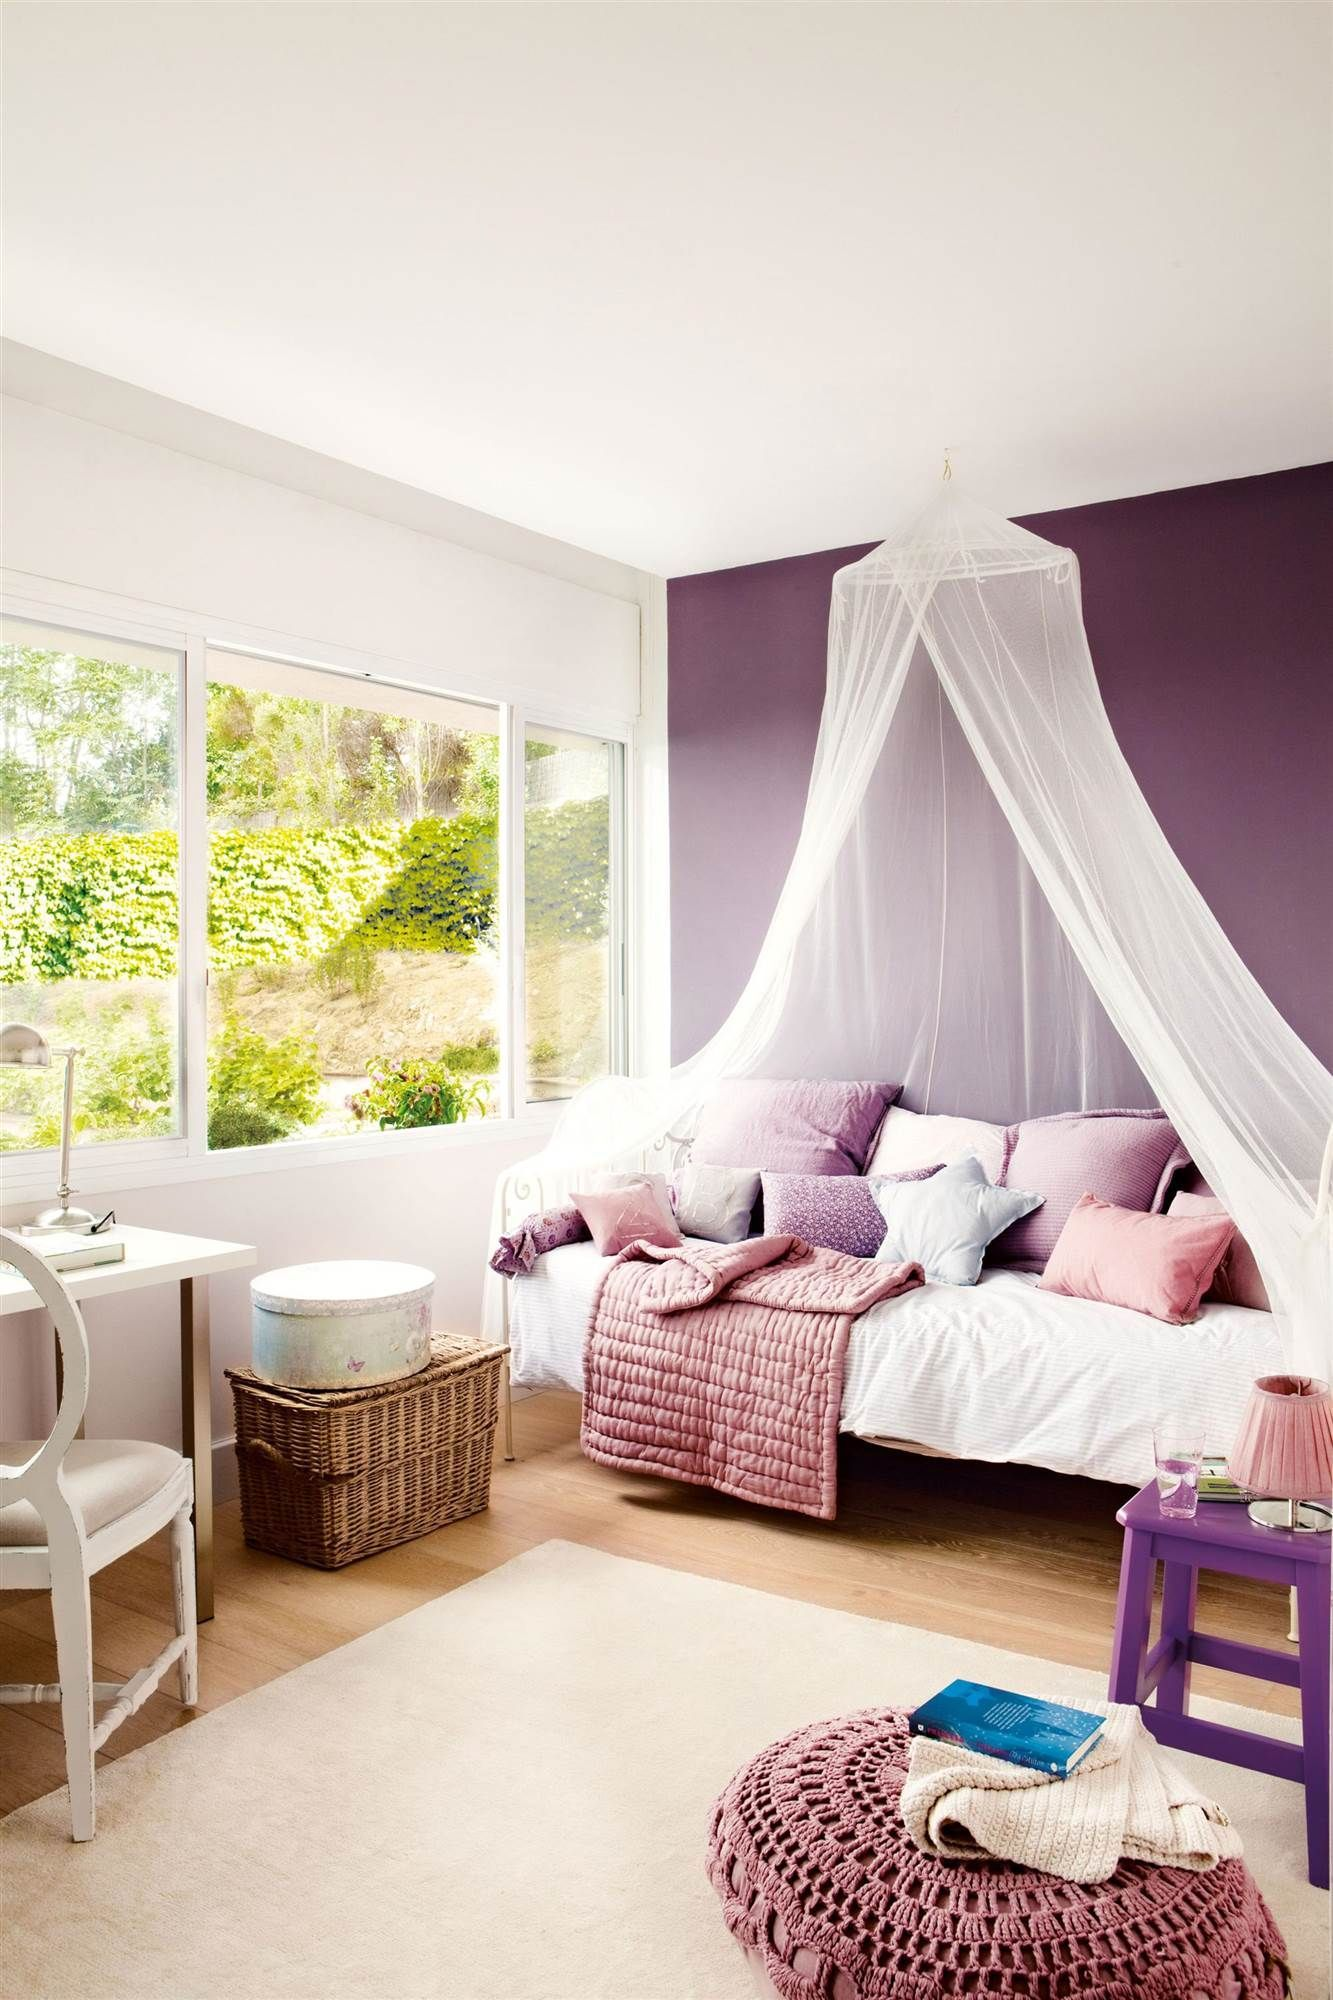 get more purple inspirations for kid's bedrooms with circu